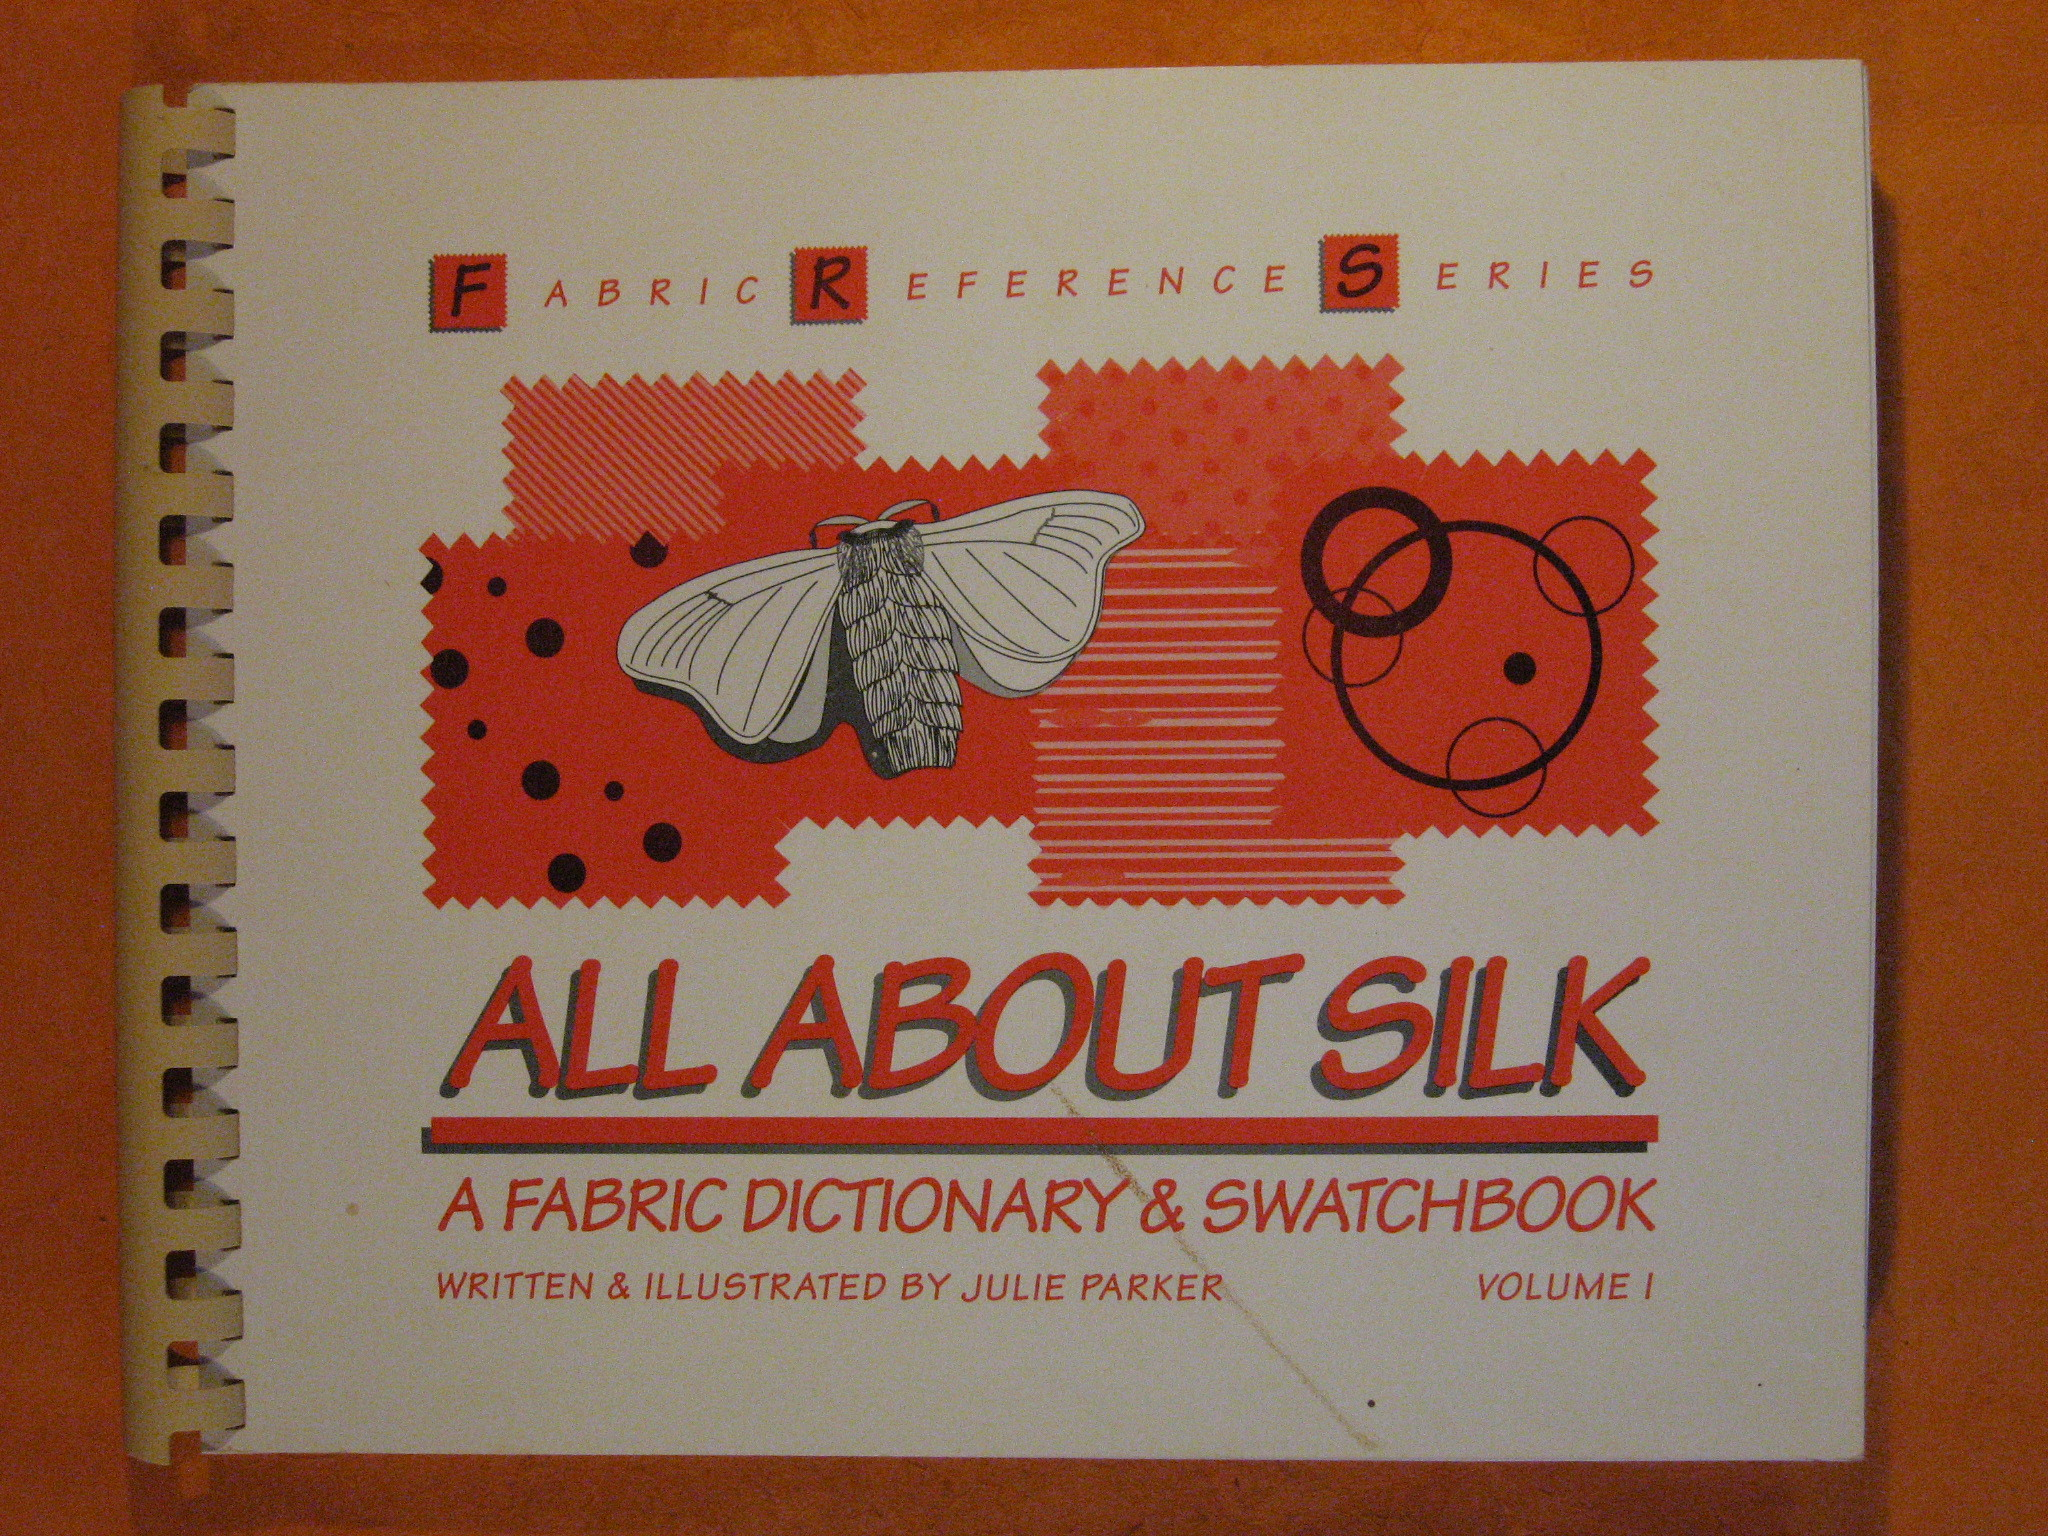 All About Silk: A Fabric Dictionary & Swatchbook (Fabric Reference Series, Volume 1)